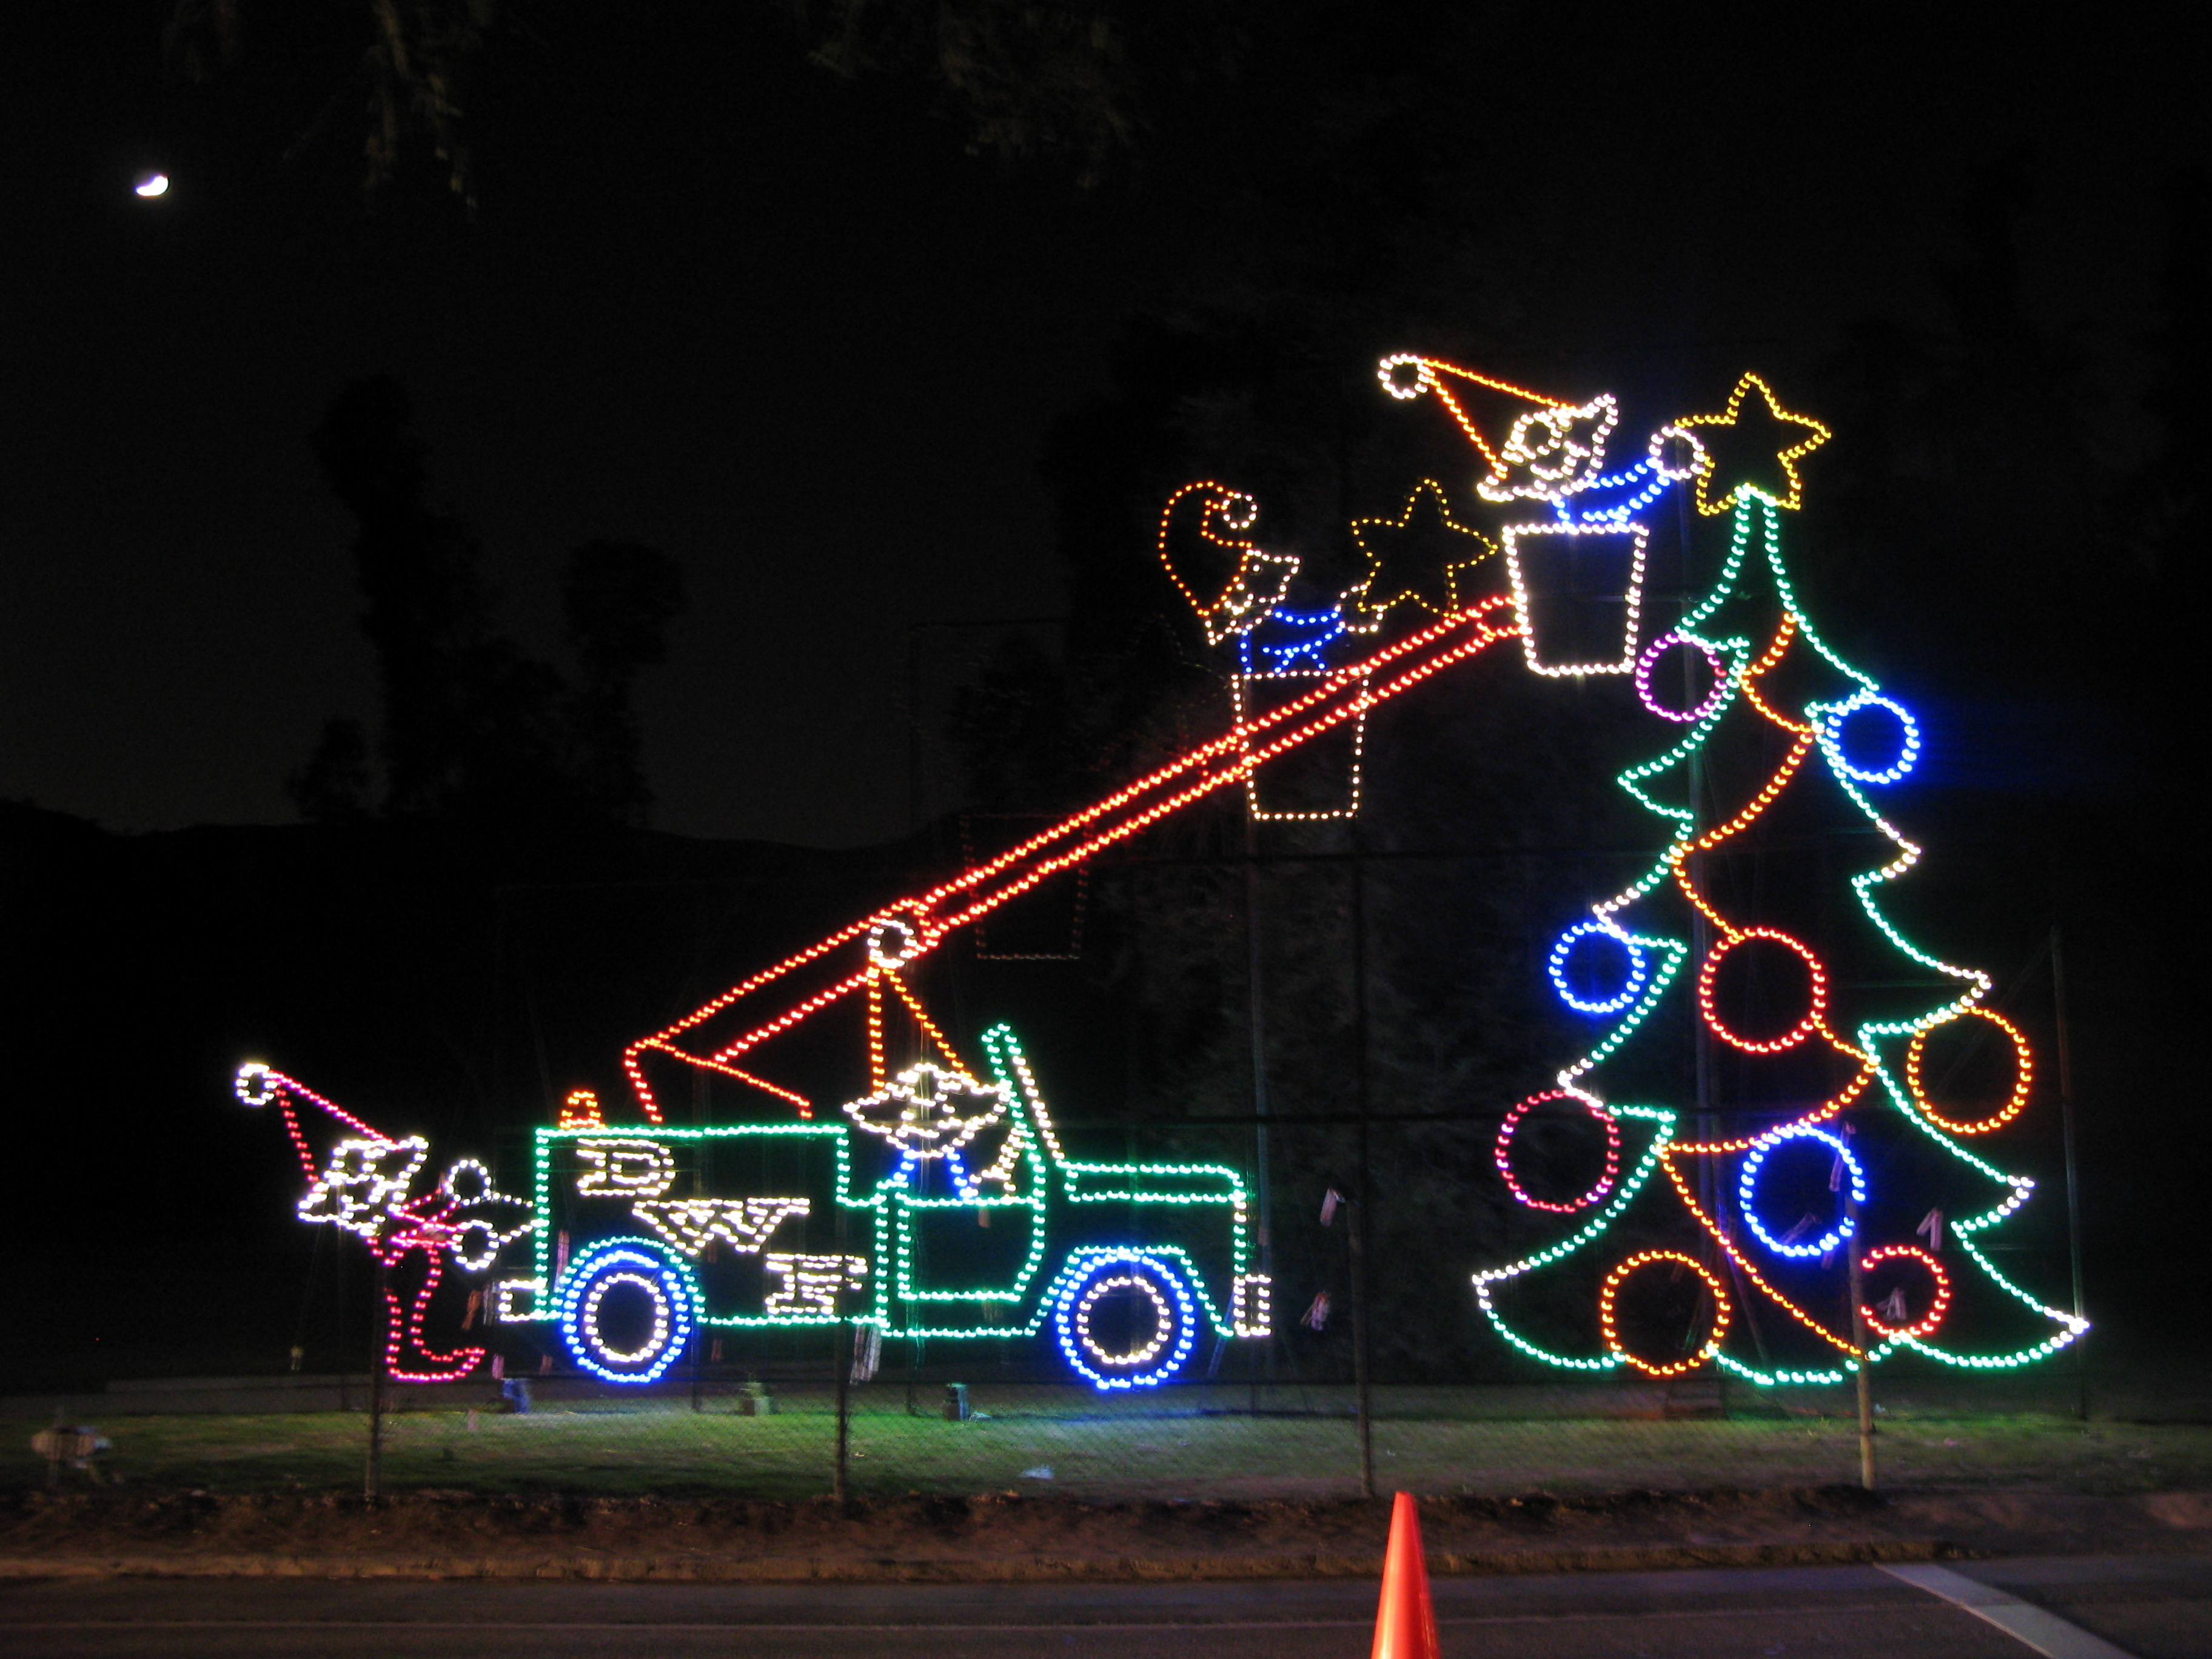 Each December, The L.A. Department Of Water And Power Holds A Drive Thru  U201cparadeu201d Of Holiday Lights At Griffith Park, The Countryu0027s Largest Urban  Park.